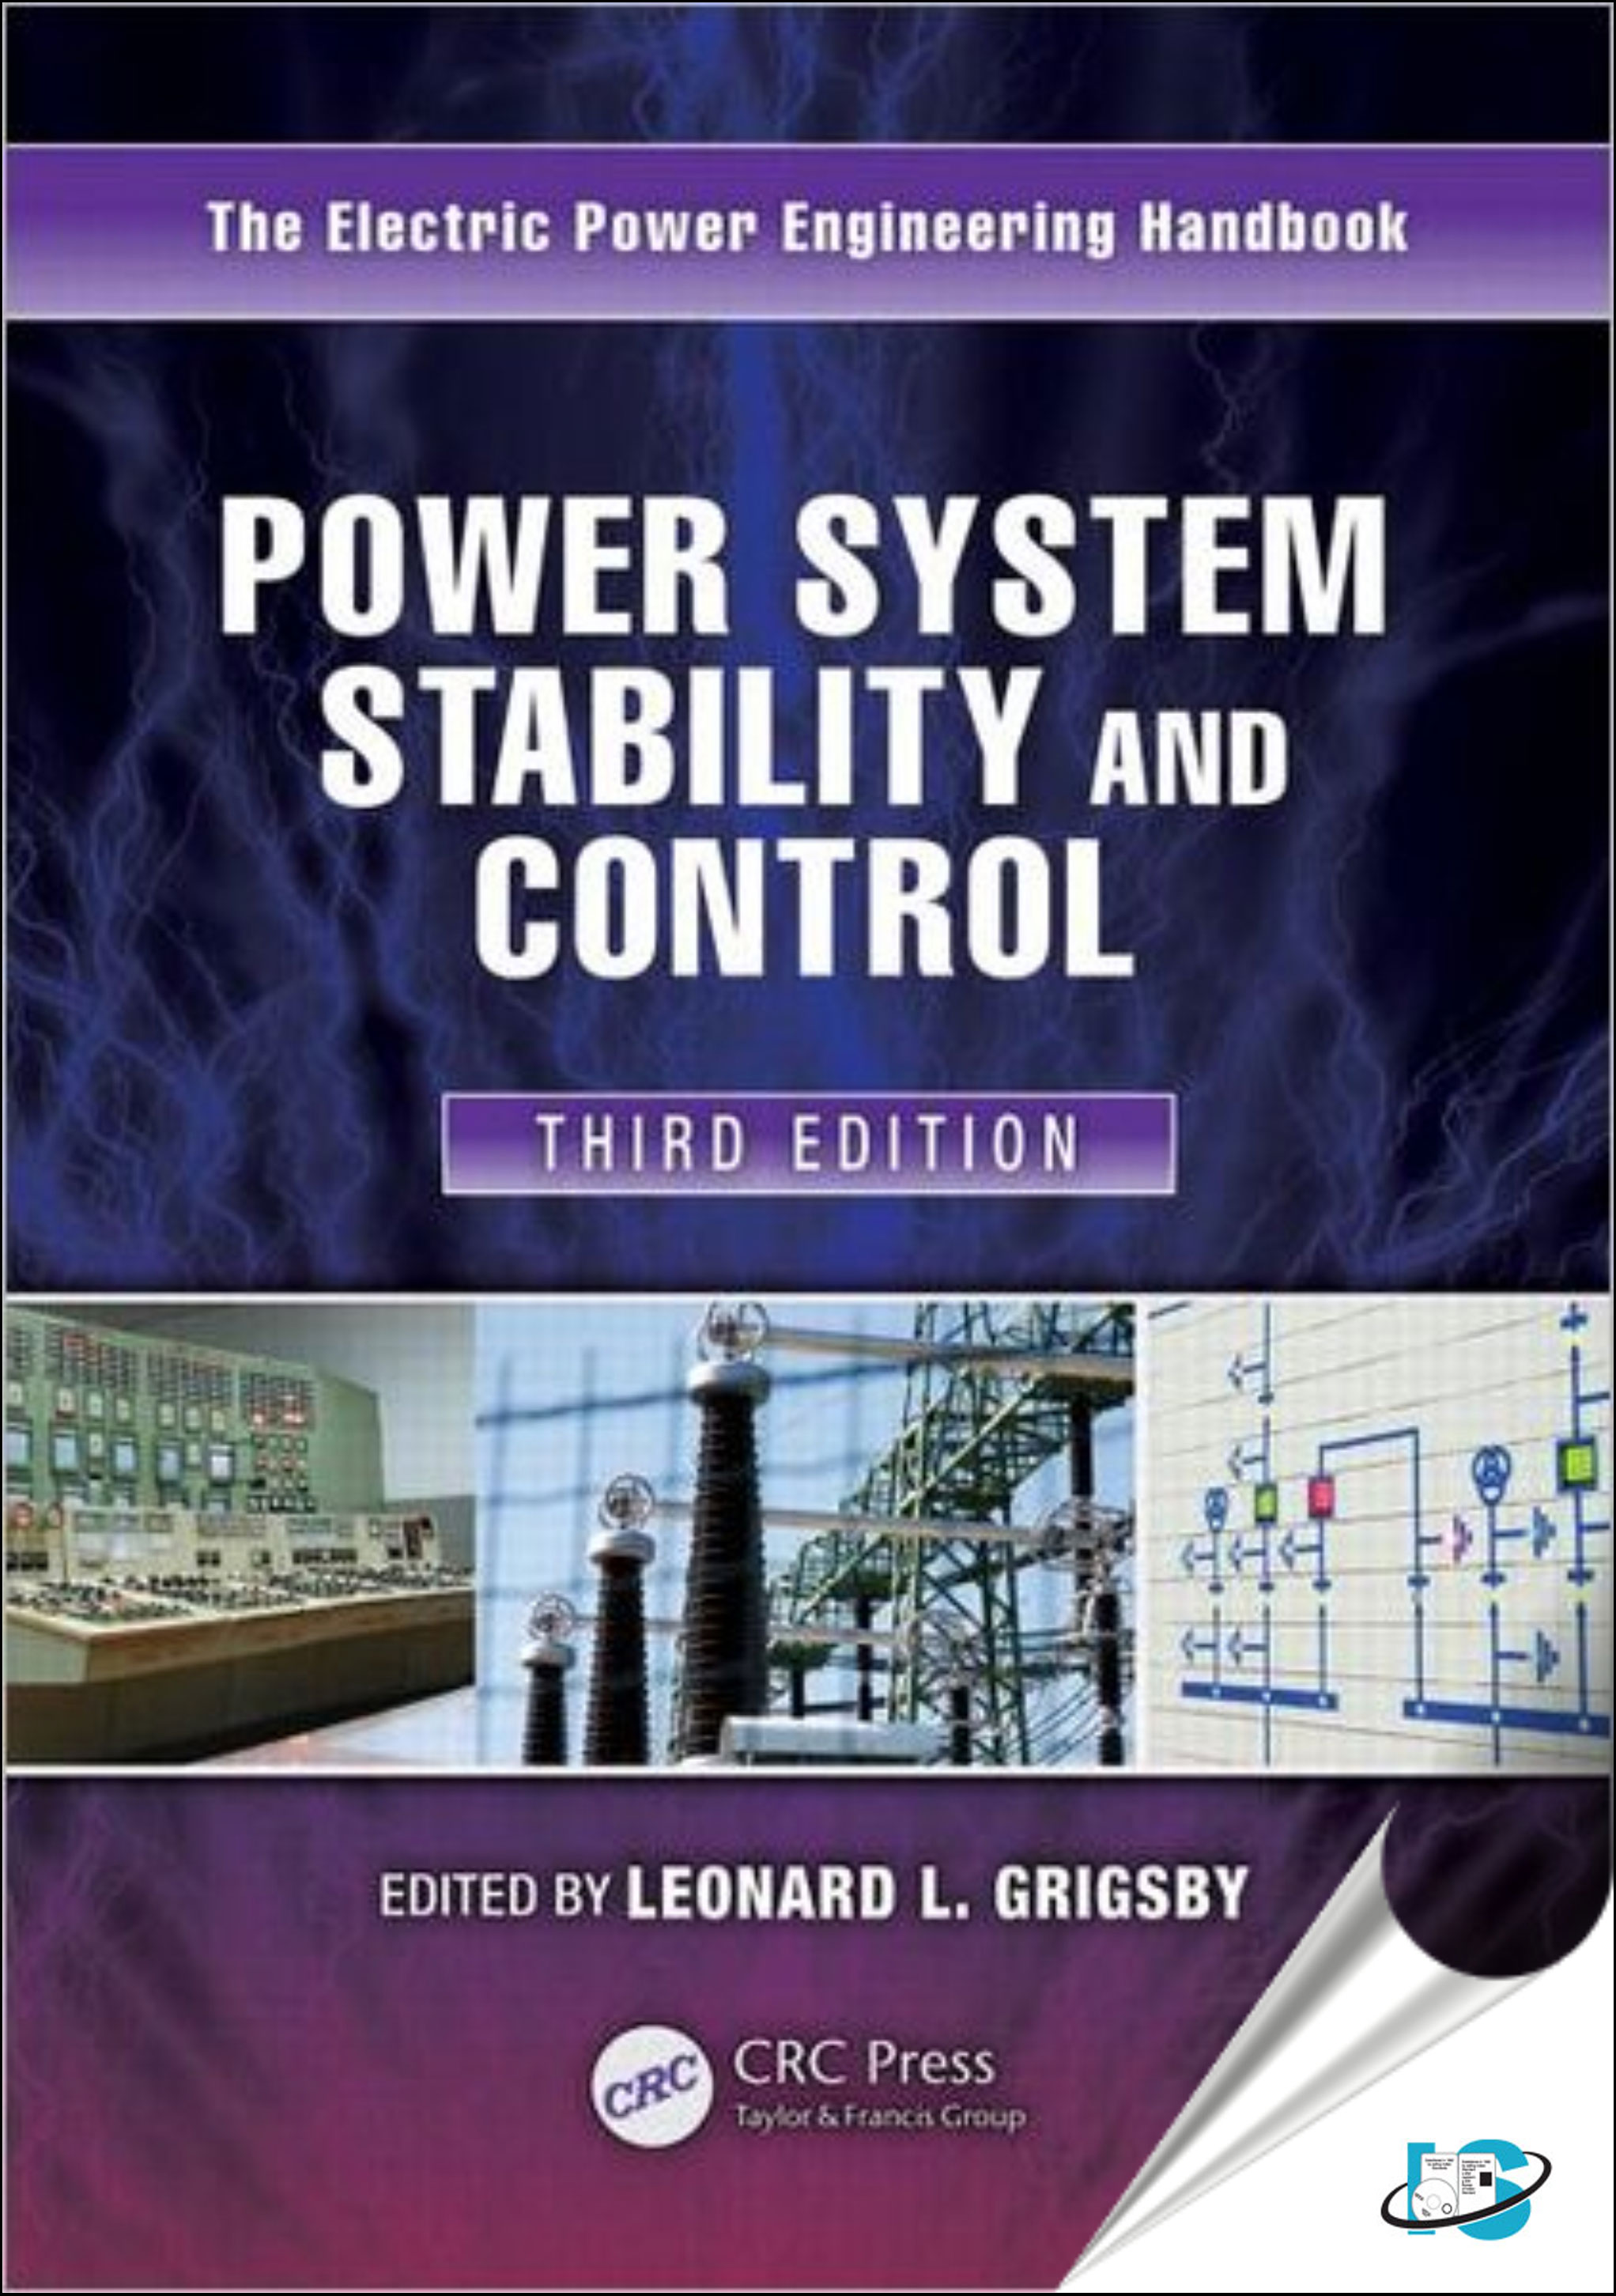 Power System Stability and Control, 3rd Edition, Leonard L. Grigsby, 1439883203, 9781439883204